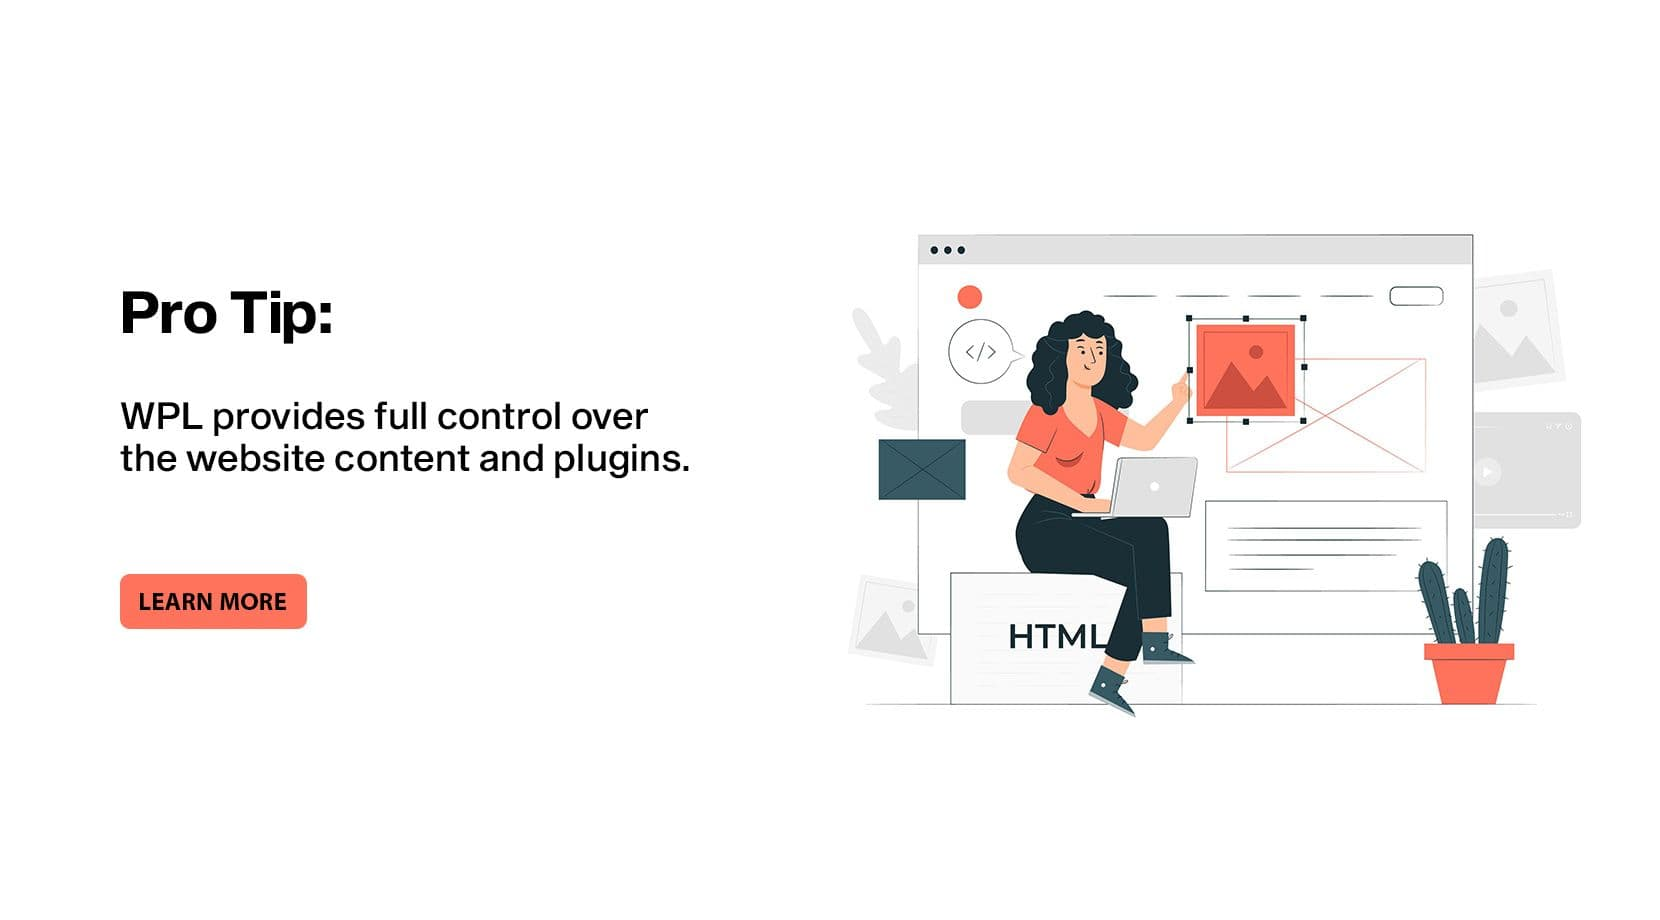 Pro-tip: WPL provides full control over the website content and plugins.